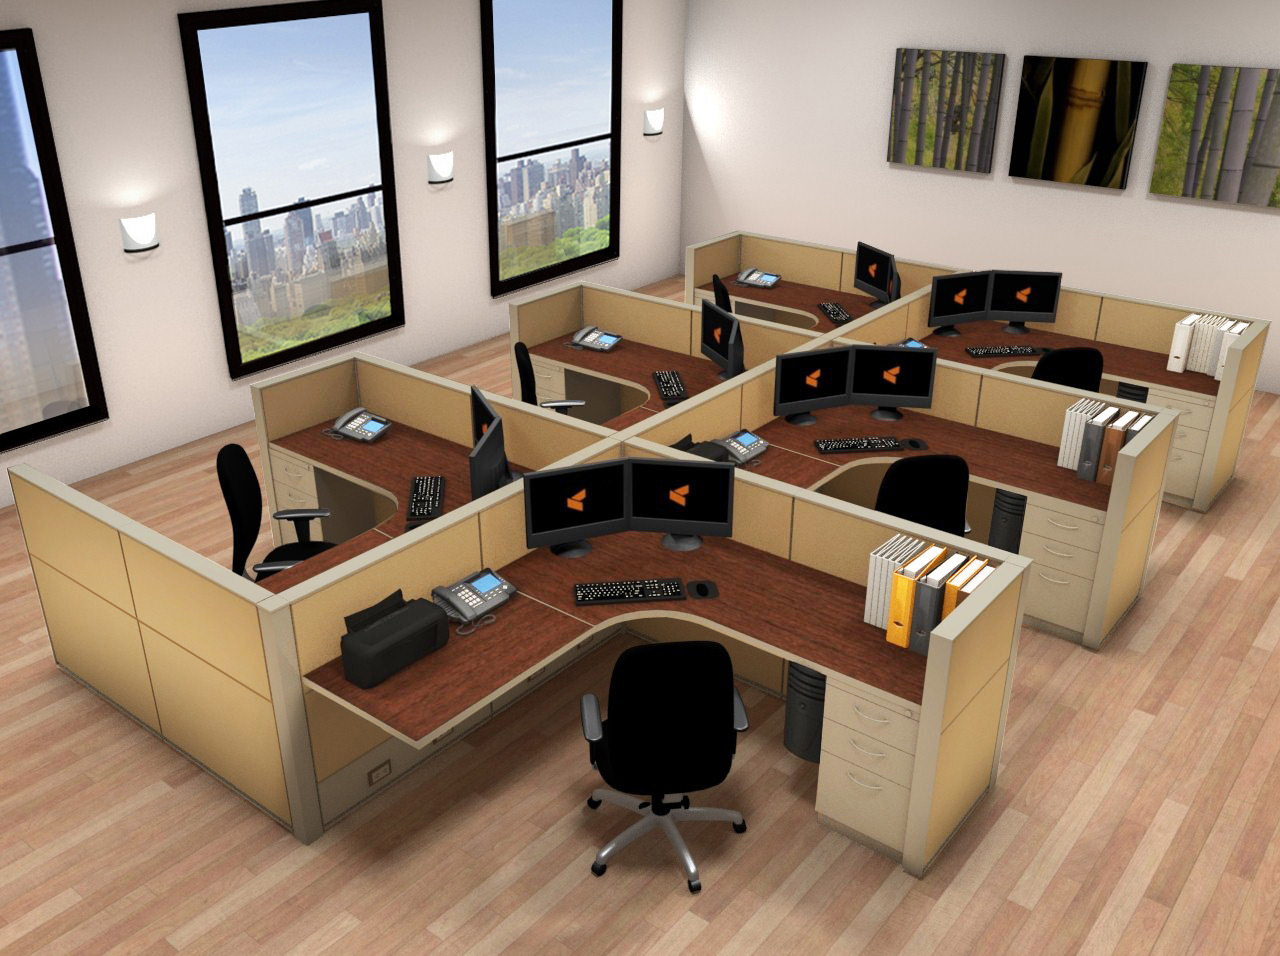 Modular office furniture layout tool for Office furniture layout tool